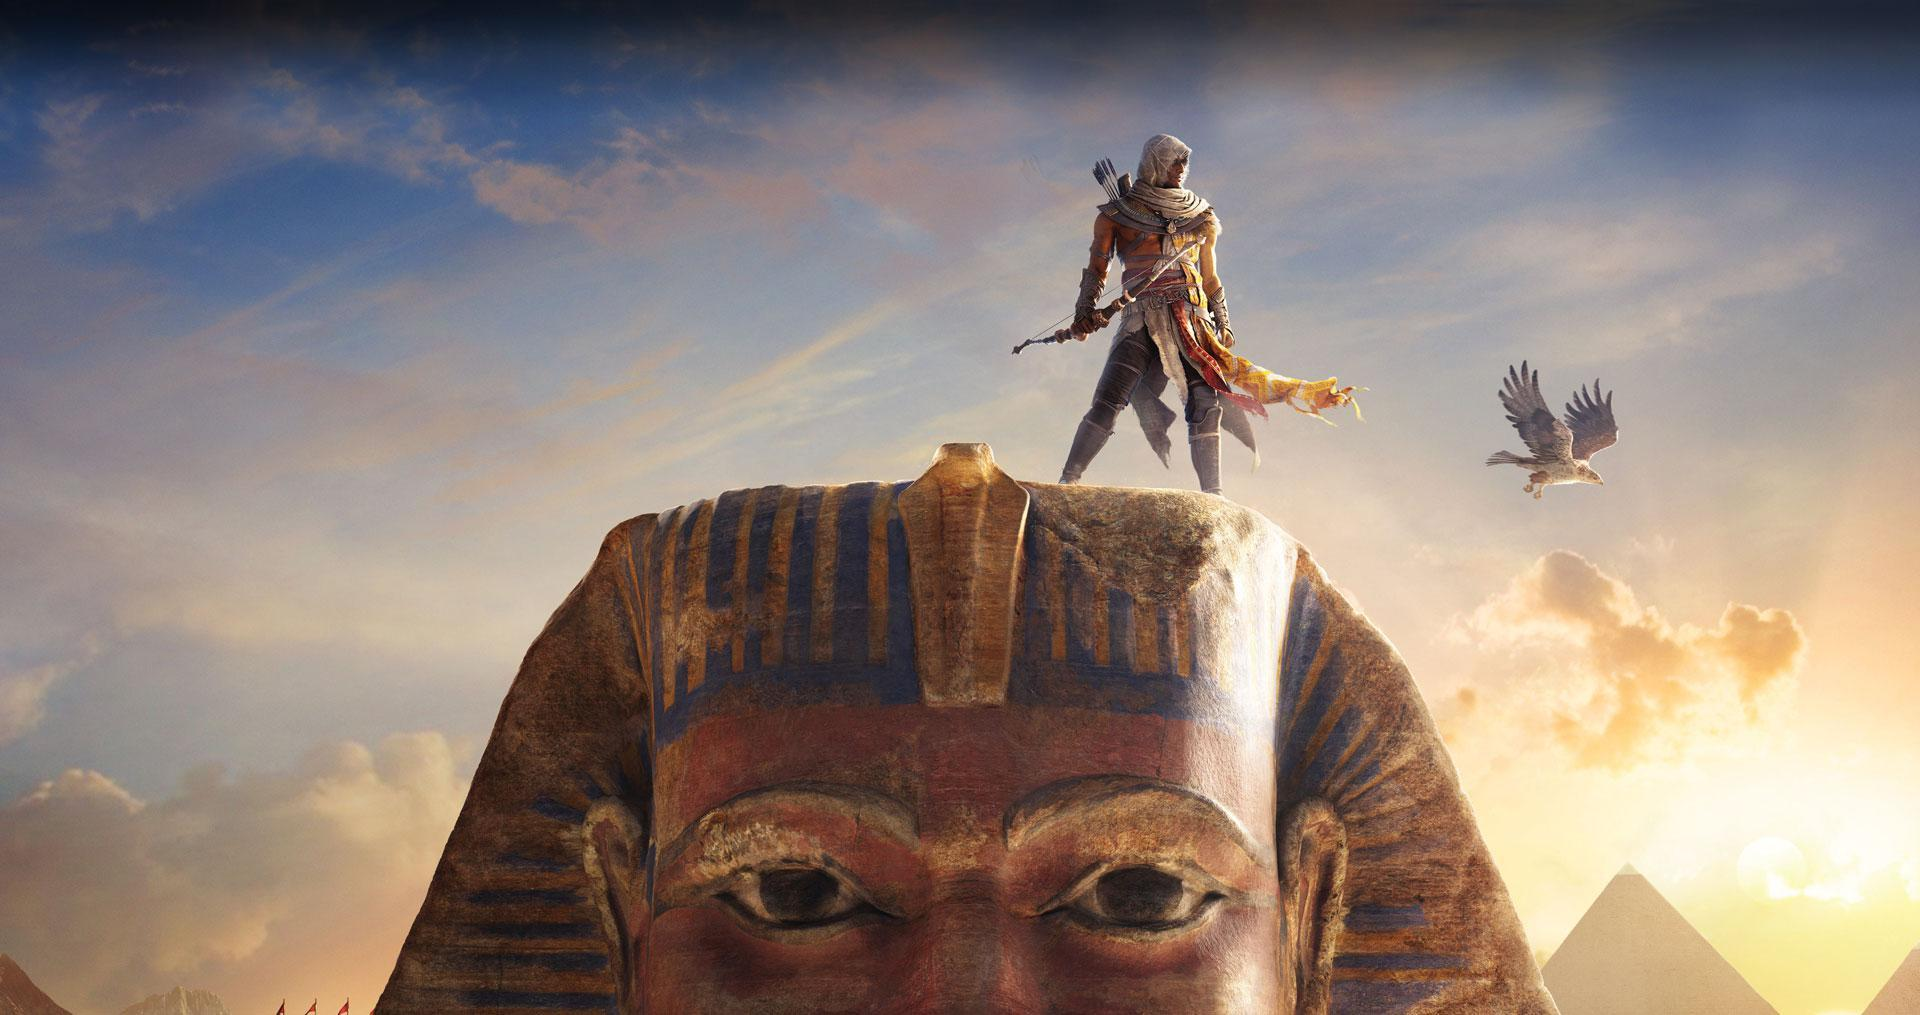 Assassin's Creed Origins in Assassin's Creed Games, Ranked From Worst to Best - 1